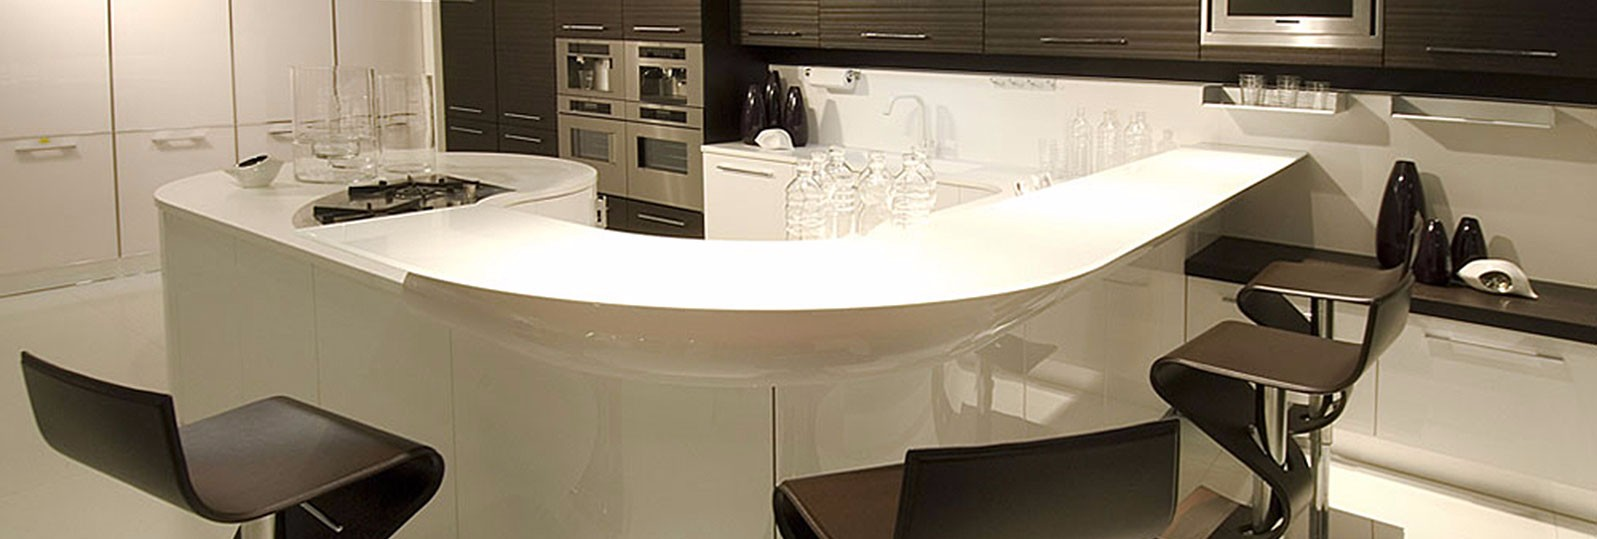 hi-macs-white-curves-kitchen